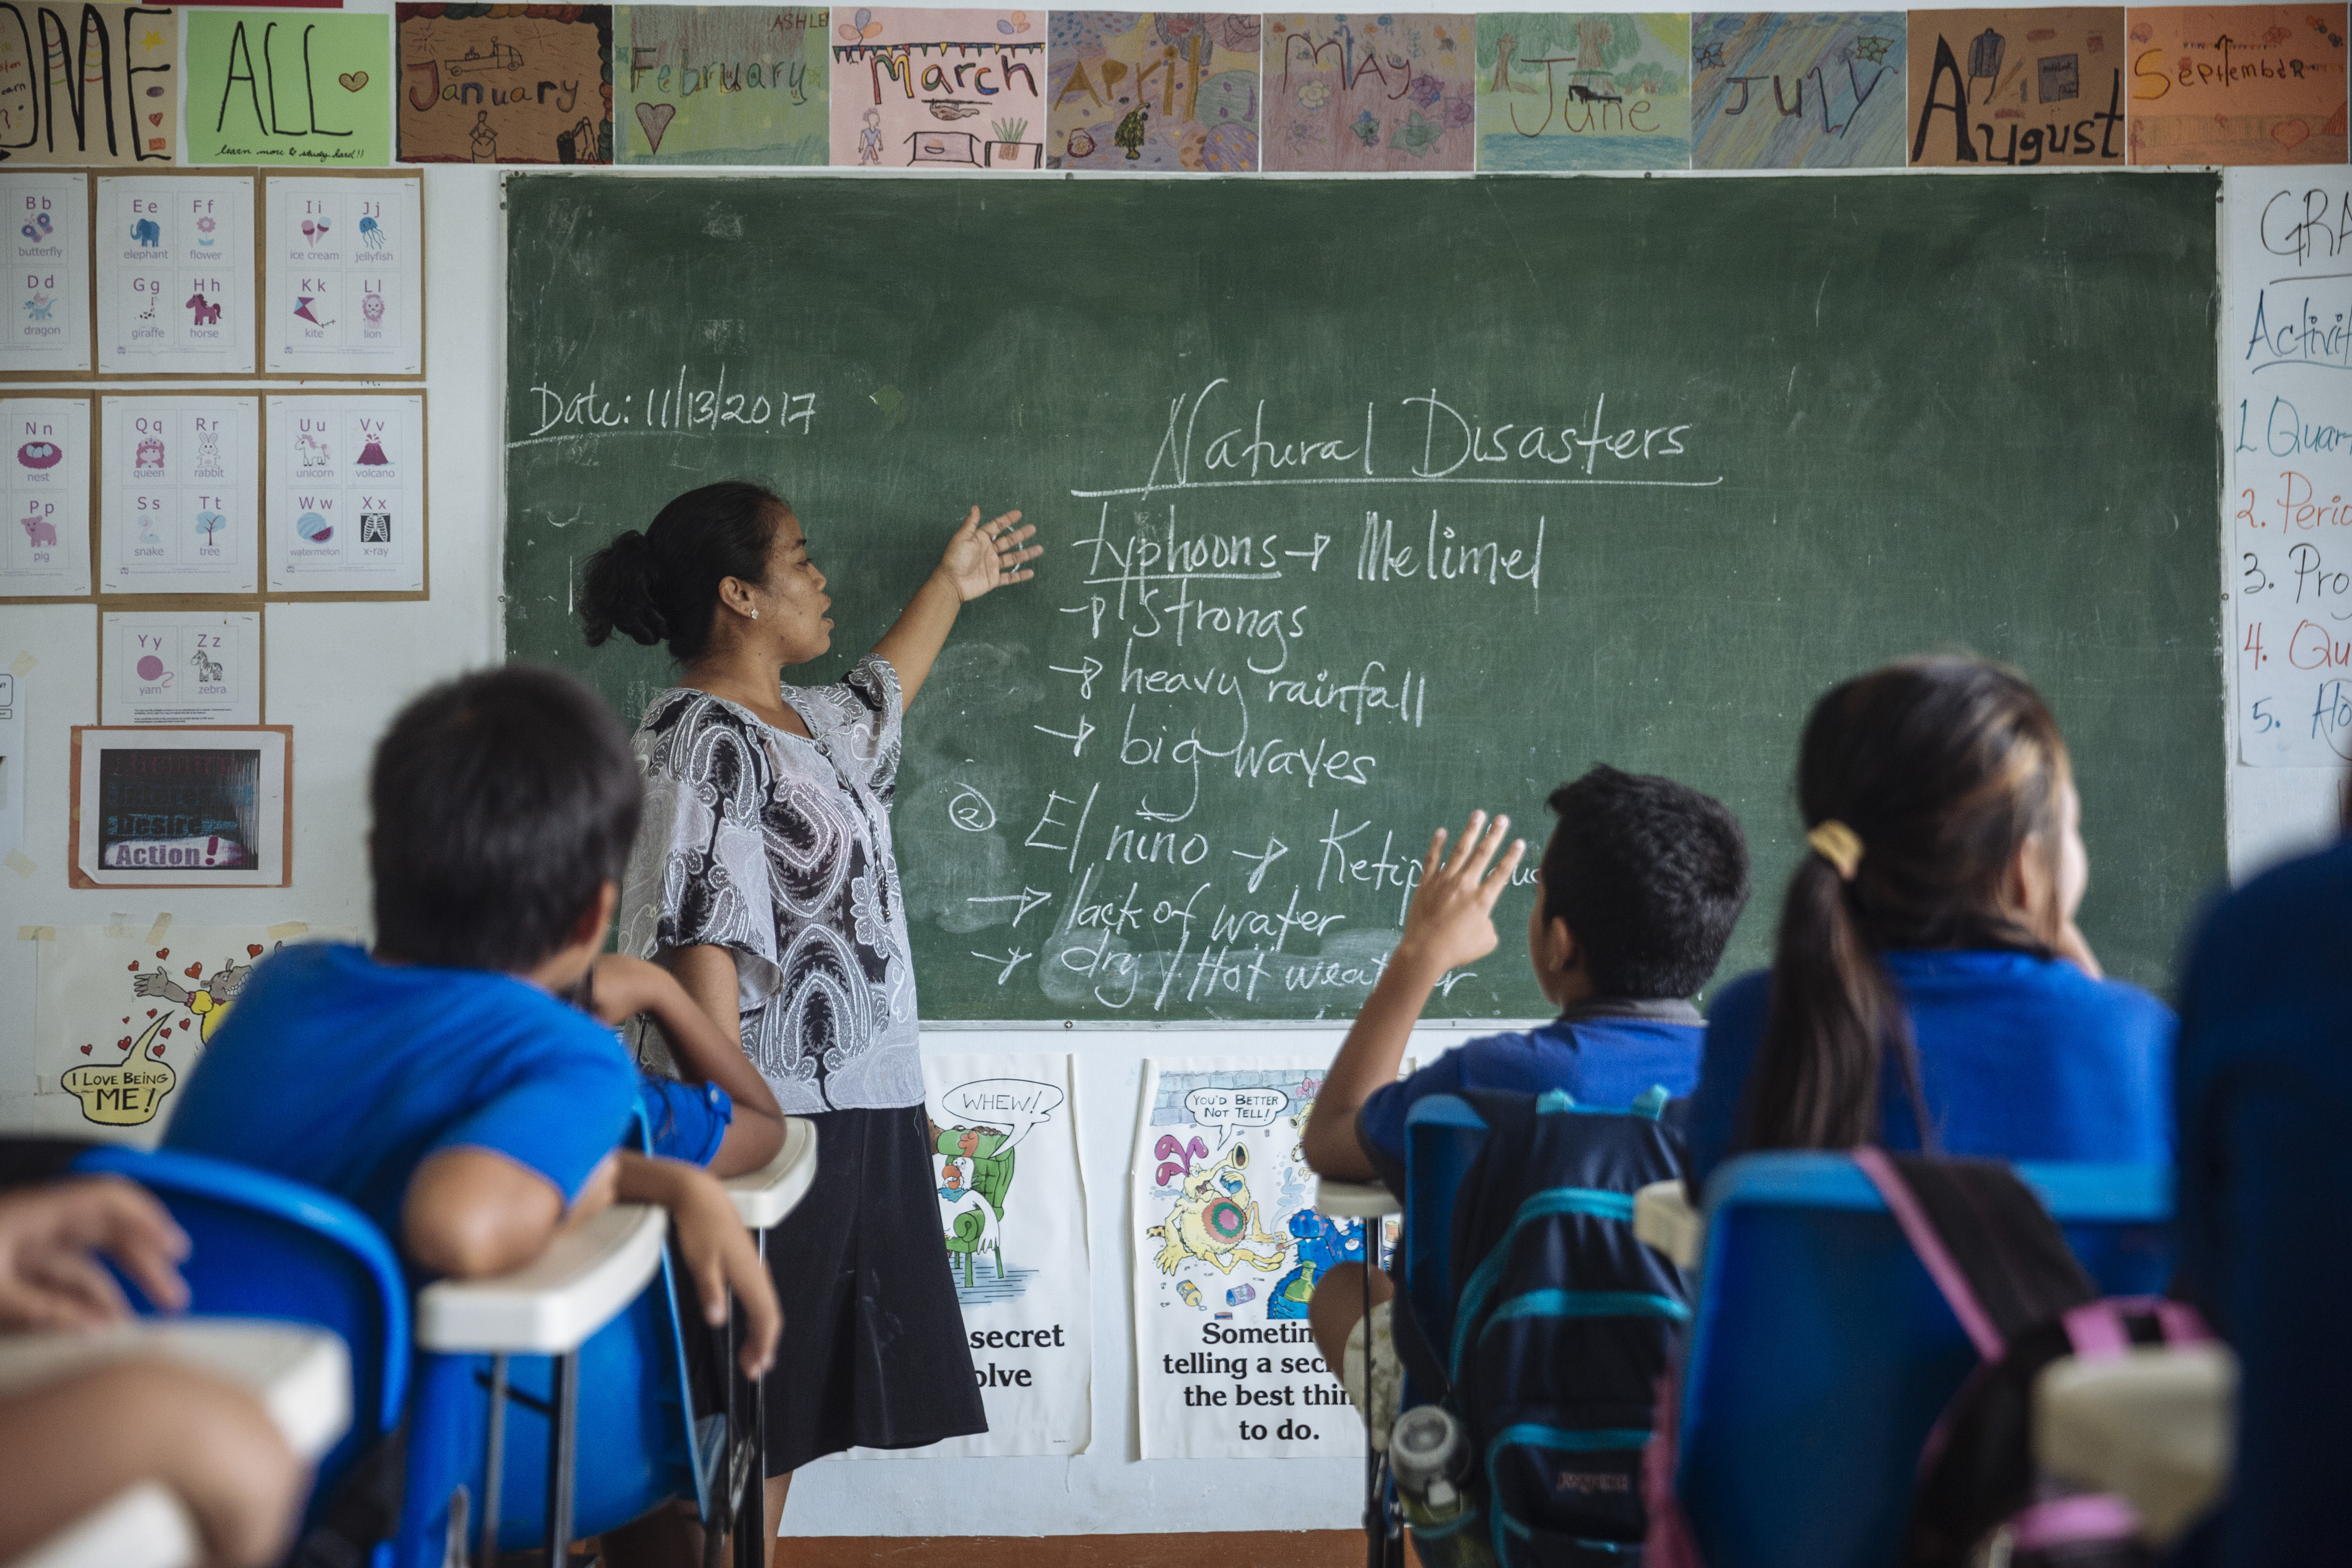 A female teacher leads a class of young students on the topic of natural disasters.